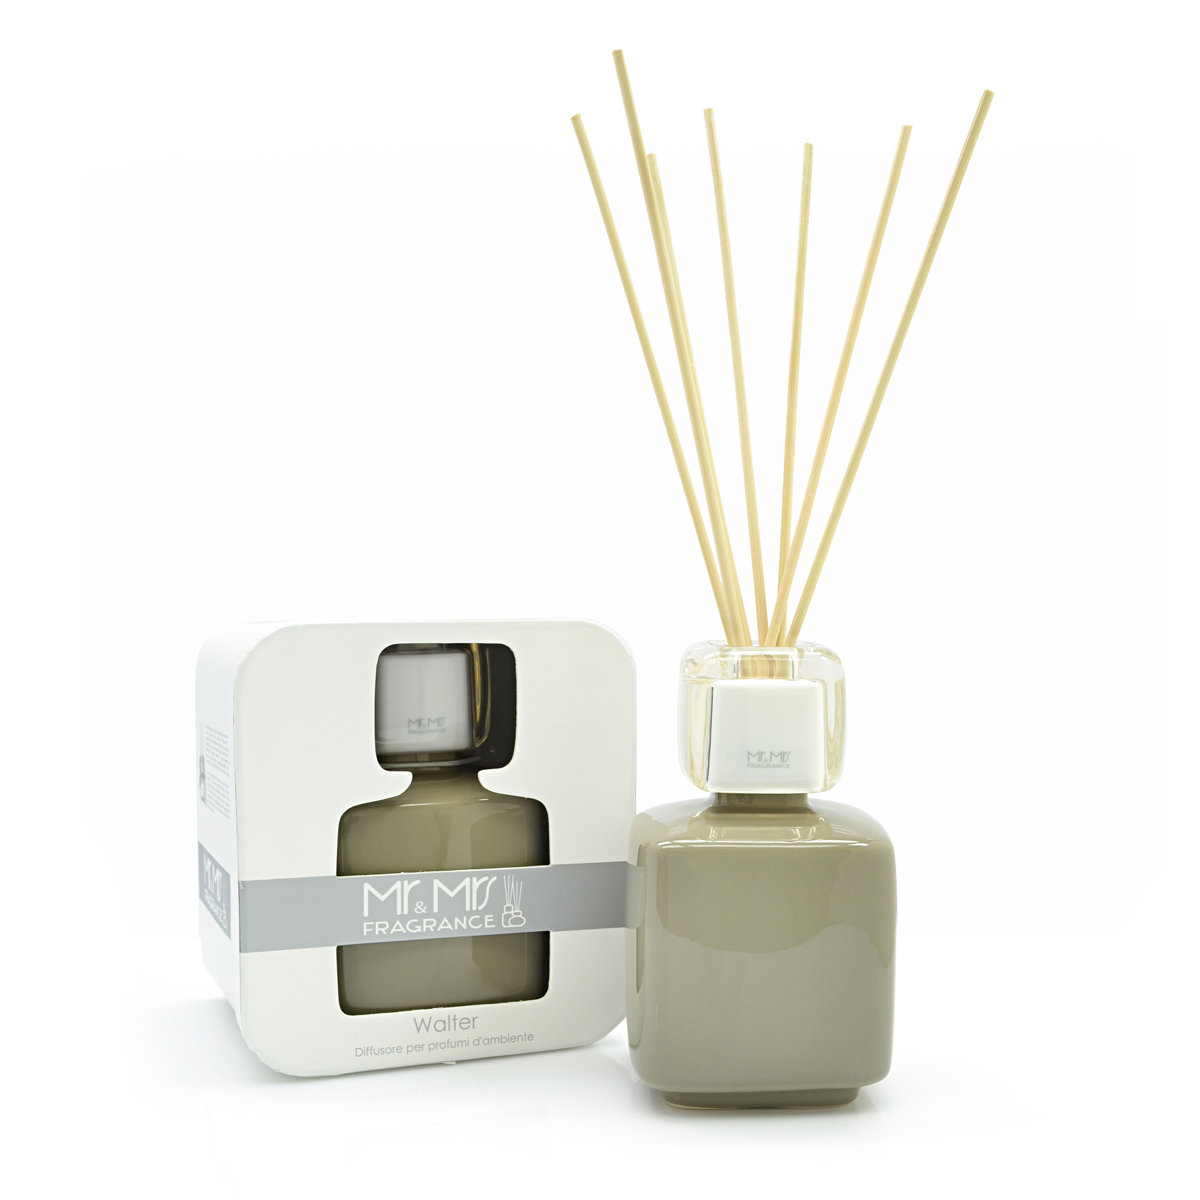 WALTER Ceramic Reed Diffuser - Turtledove